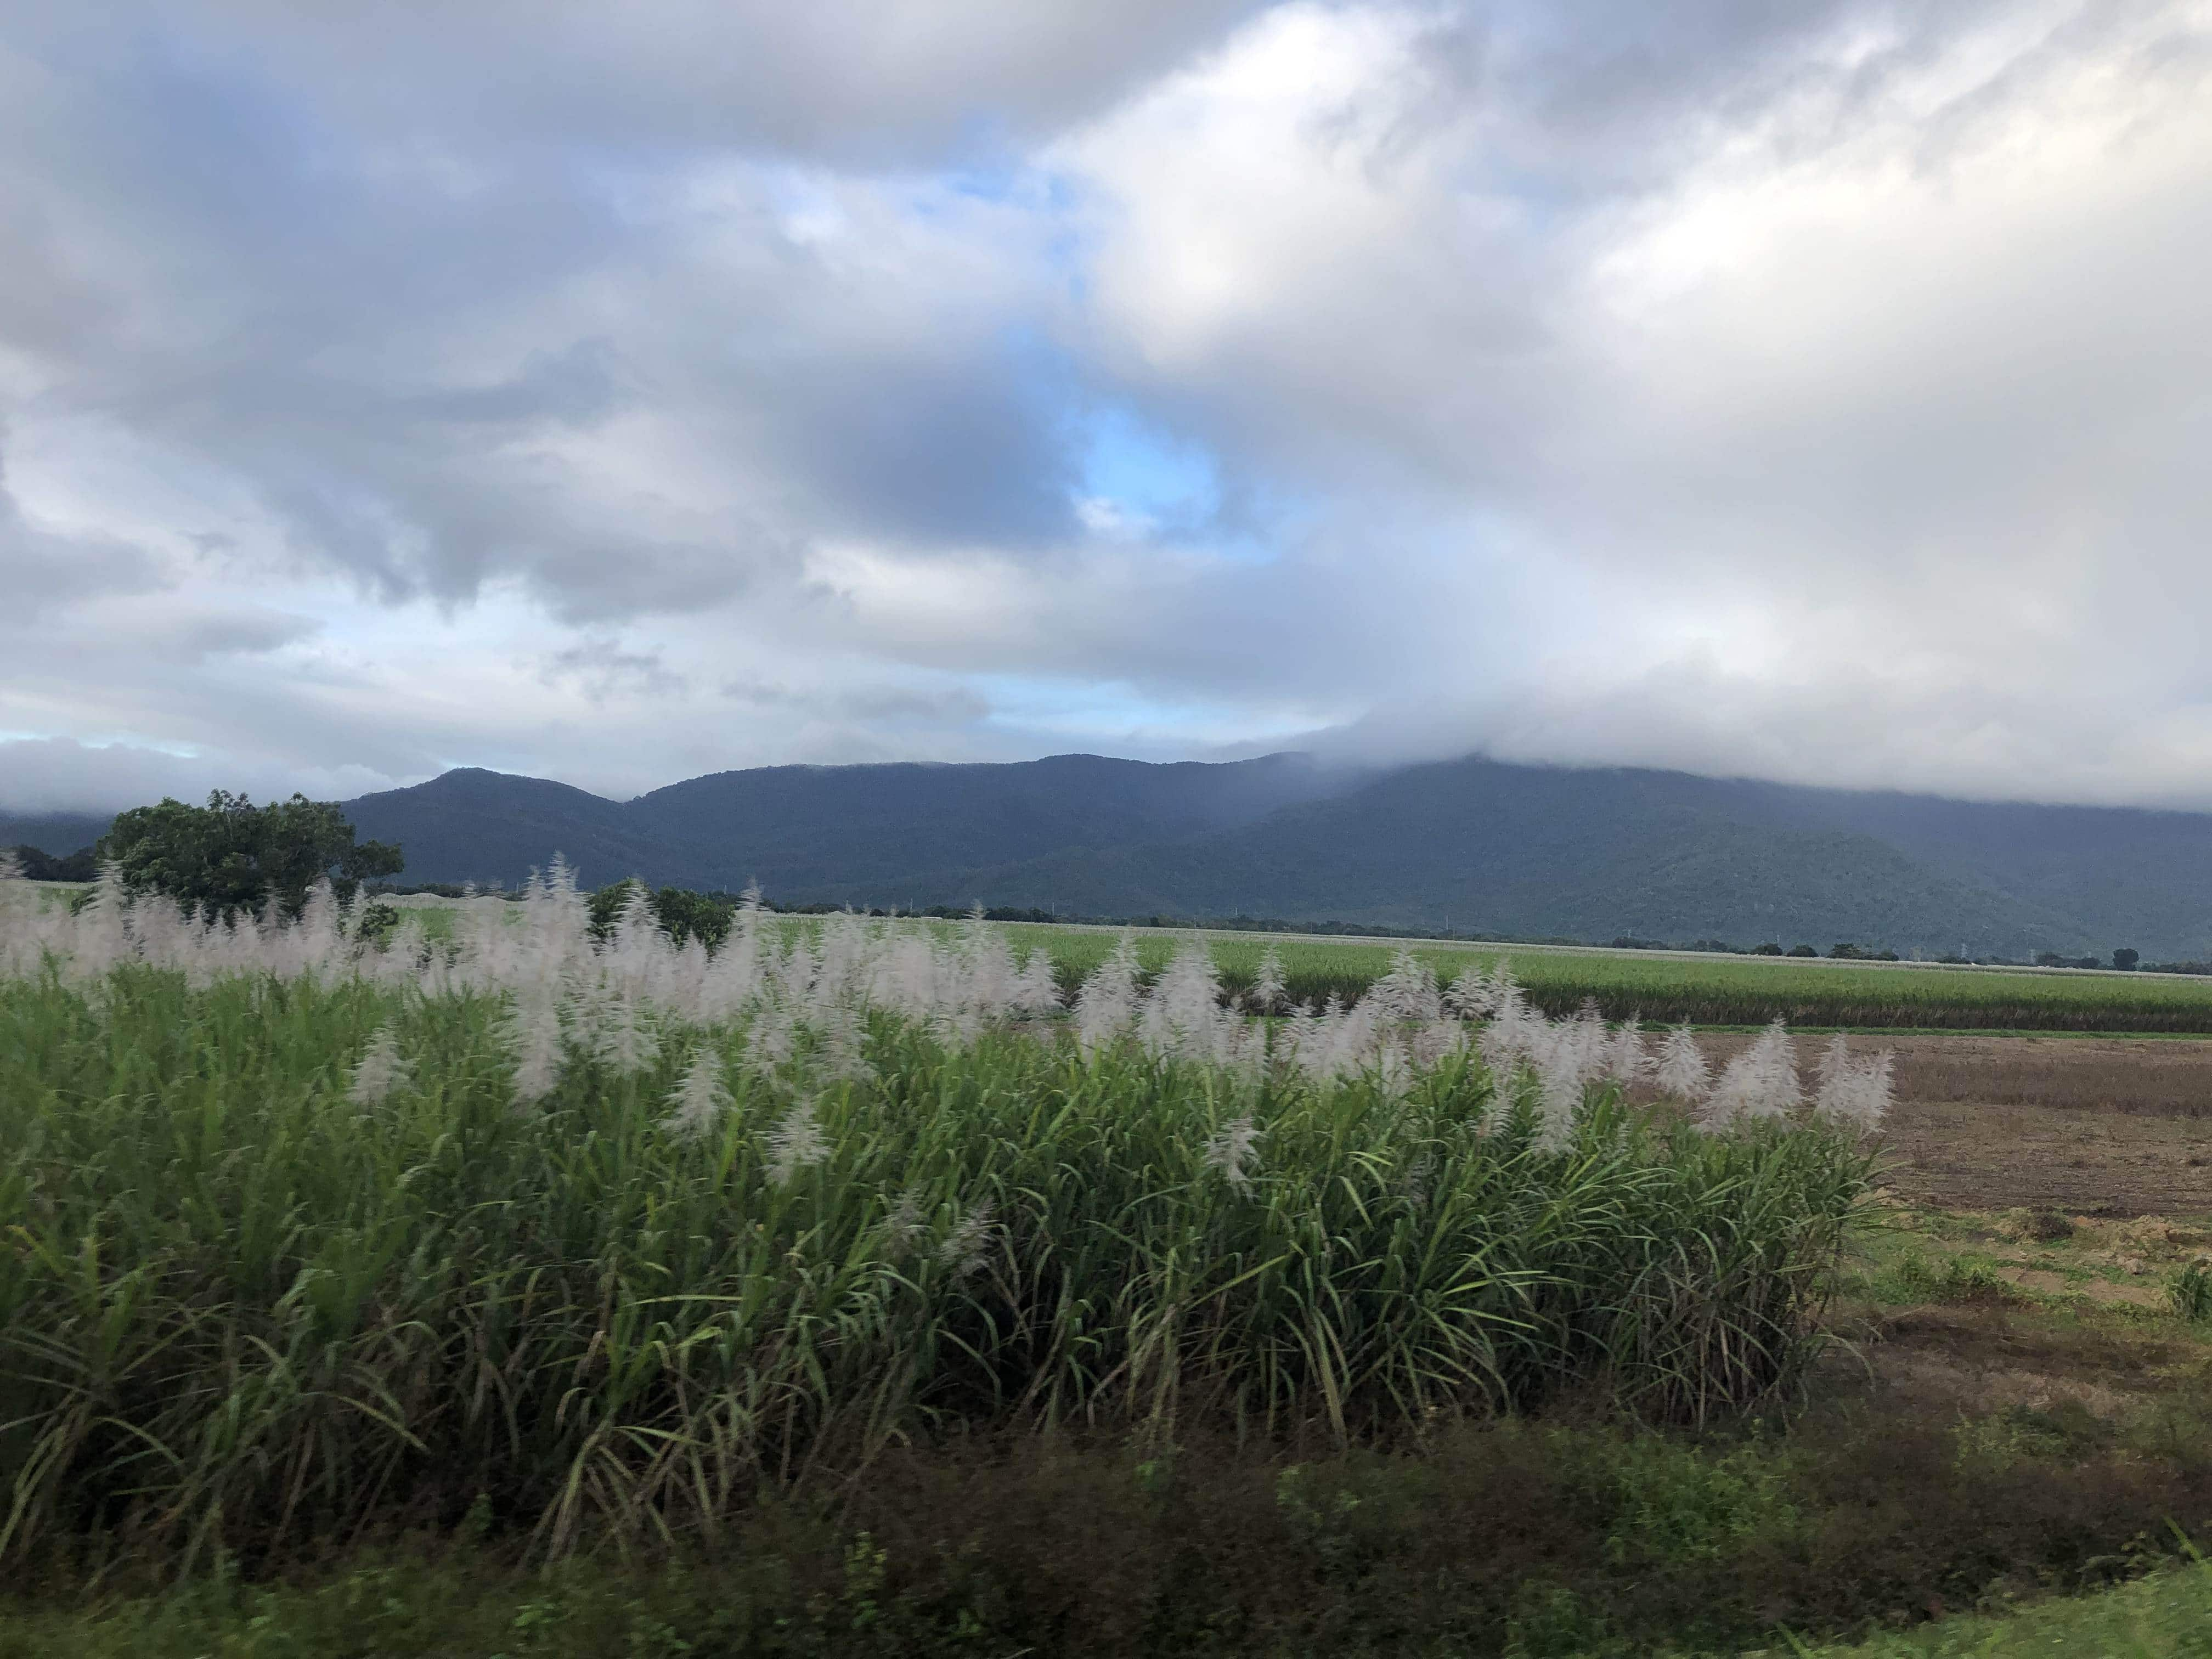 Sugar cane against the jungle background